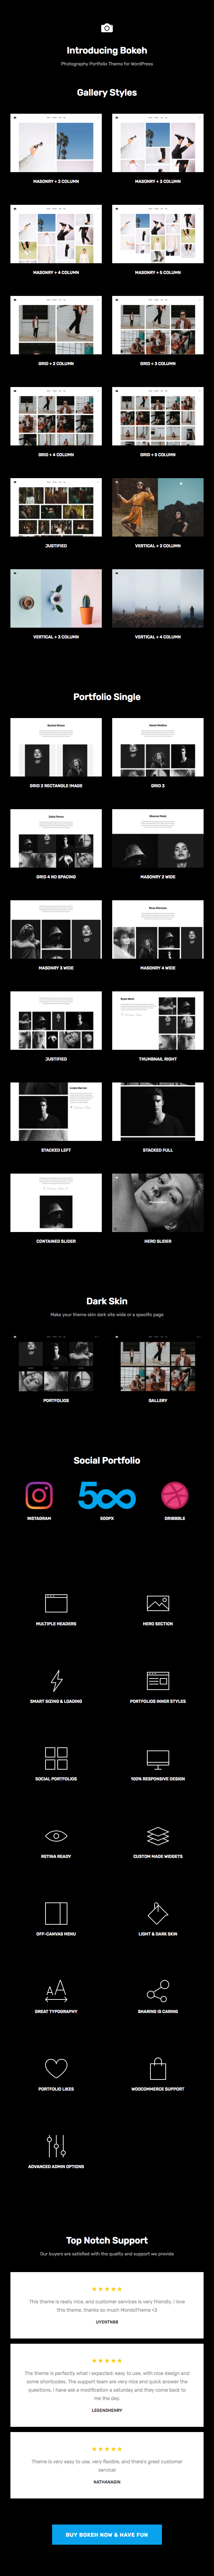 Bokeh - Photography Portfolio Theme for WordPress